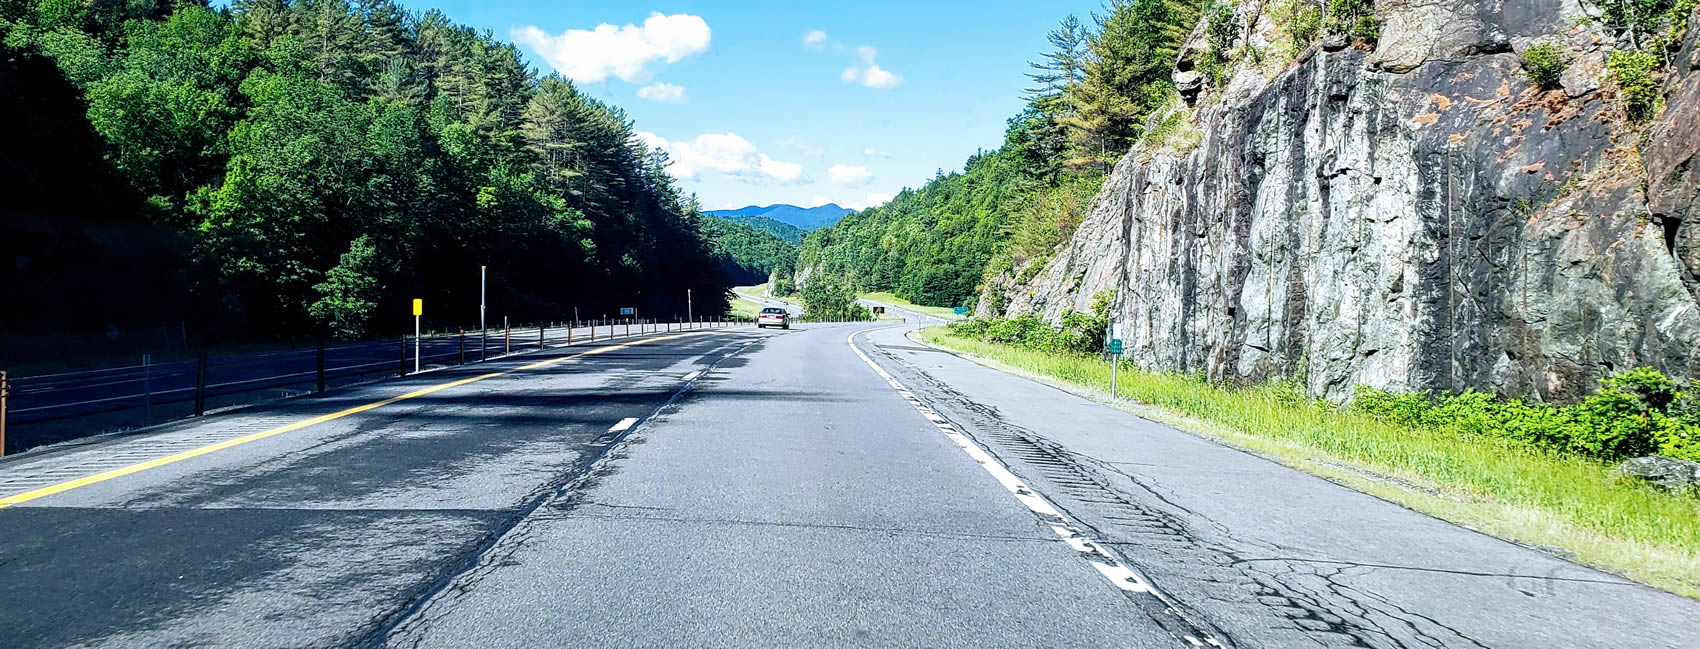 Nissan Lease Specials >> Montreal to New York Road Trip: Tips for a Nice 5h Drive • LeaseCosts Canada